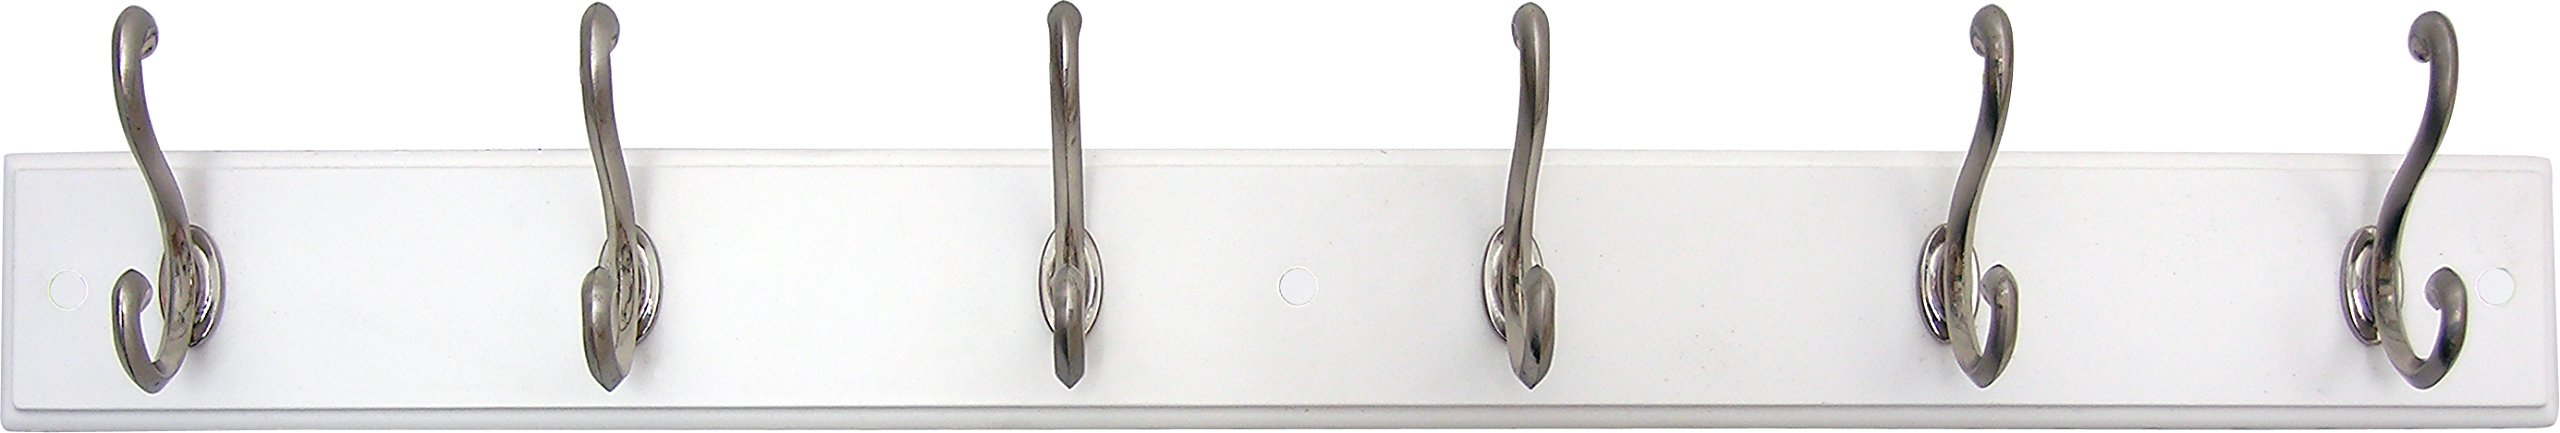 Headbourne 93785 Hook Rail/Coat Rack with 6 Satin Nickel Hooks, White Board - 6 Satin nickel double hooks on white board Sturdy hooks are perfect for hats, coats, umbrellas and other items Wall mounted backplate is 26-inches long x 3-inches wide - entryway-furniture-decor, entryway-laundry-room, coat-racks - 619MAZWEV1L -